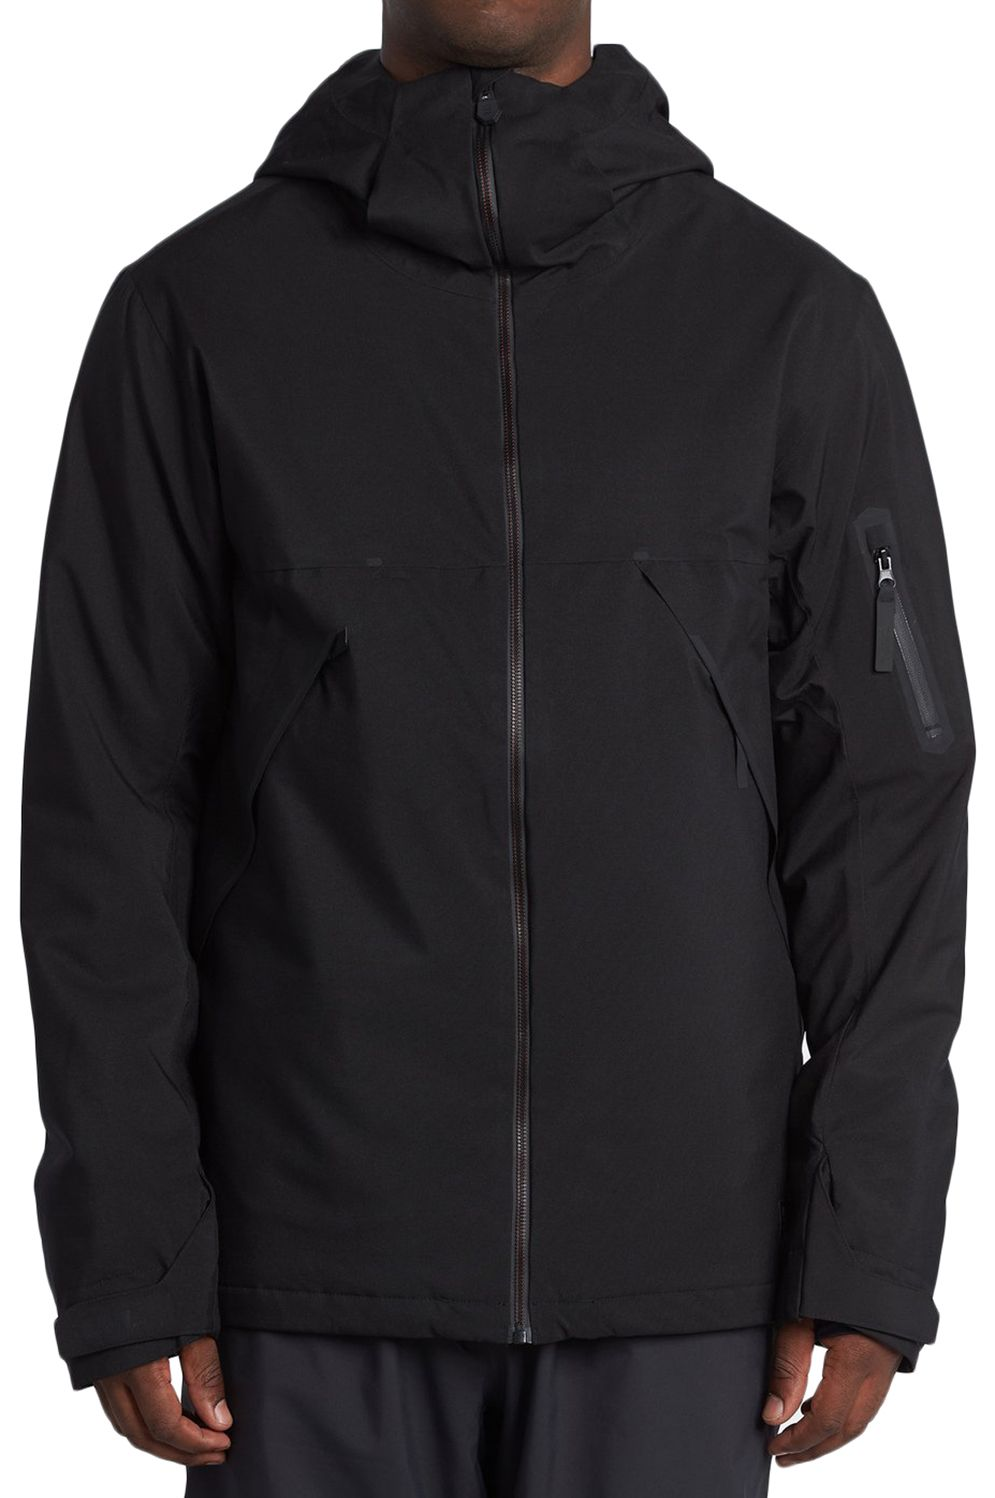 Blusão Billabong EXPEDITION Black